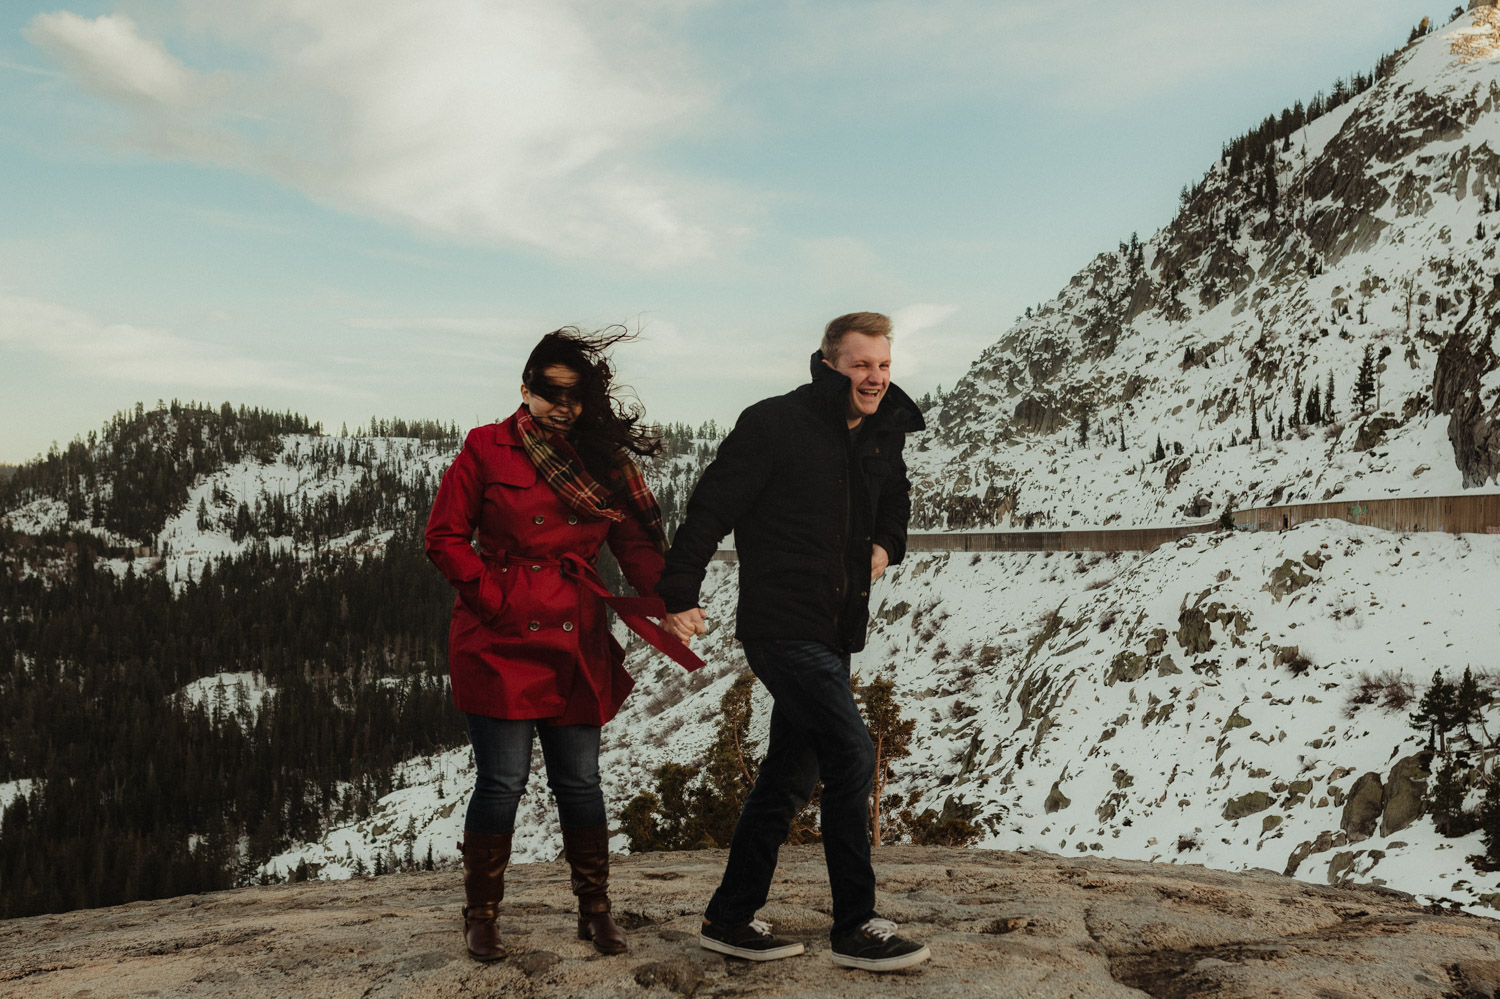 Windy engagement photo inspiration at Donner Pass photo